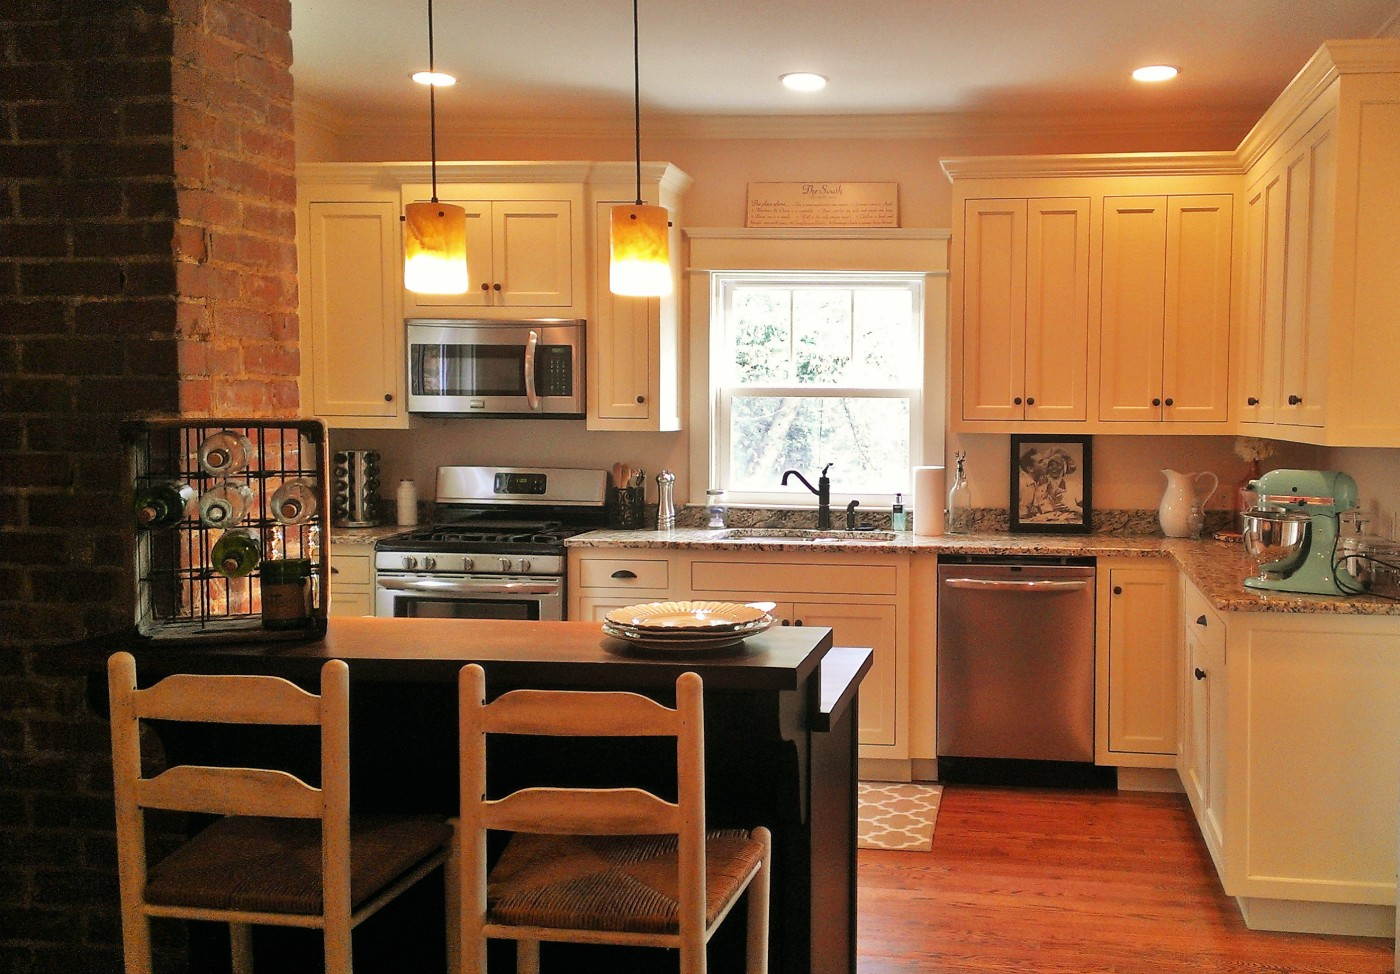 Questions to ask a prospective custom home builder in Fayetteville, NC: